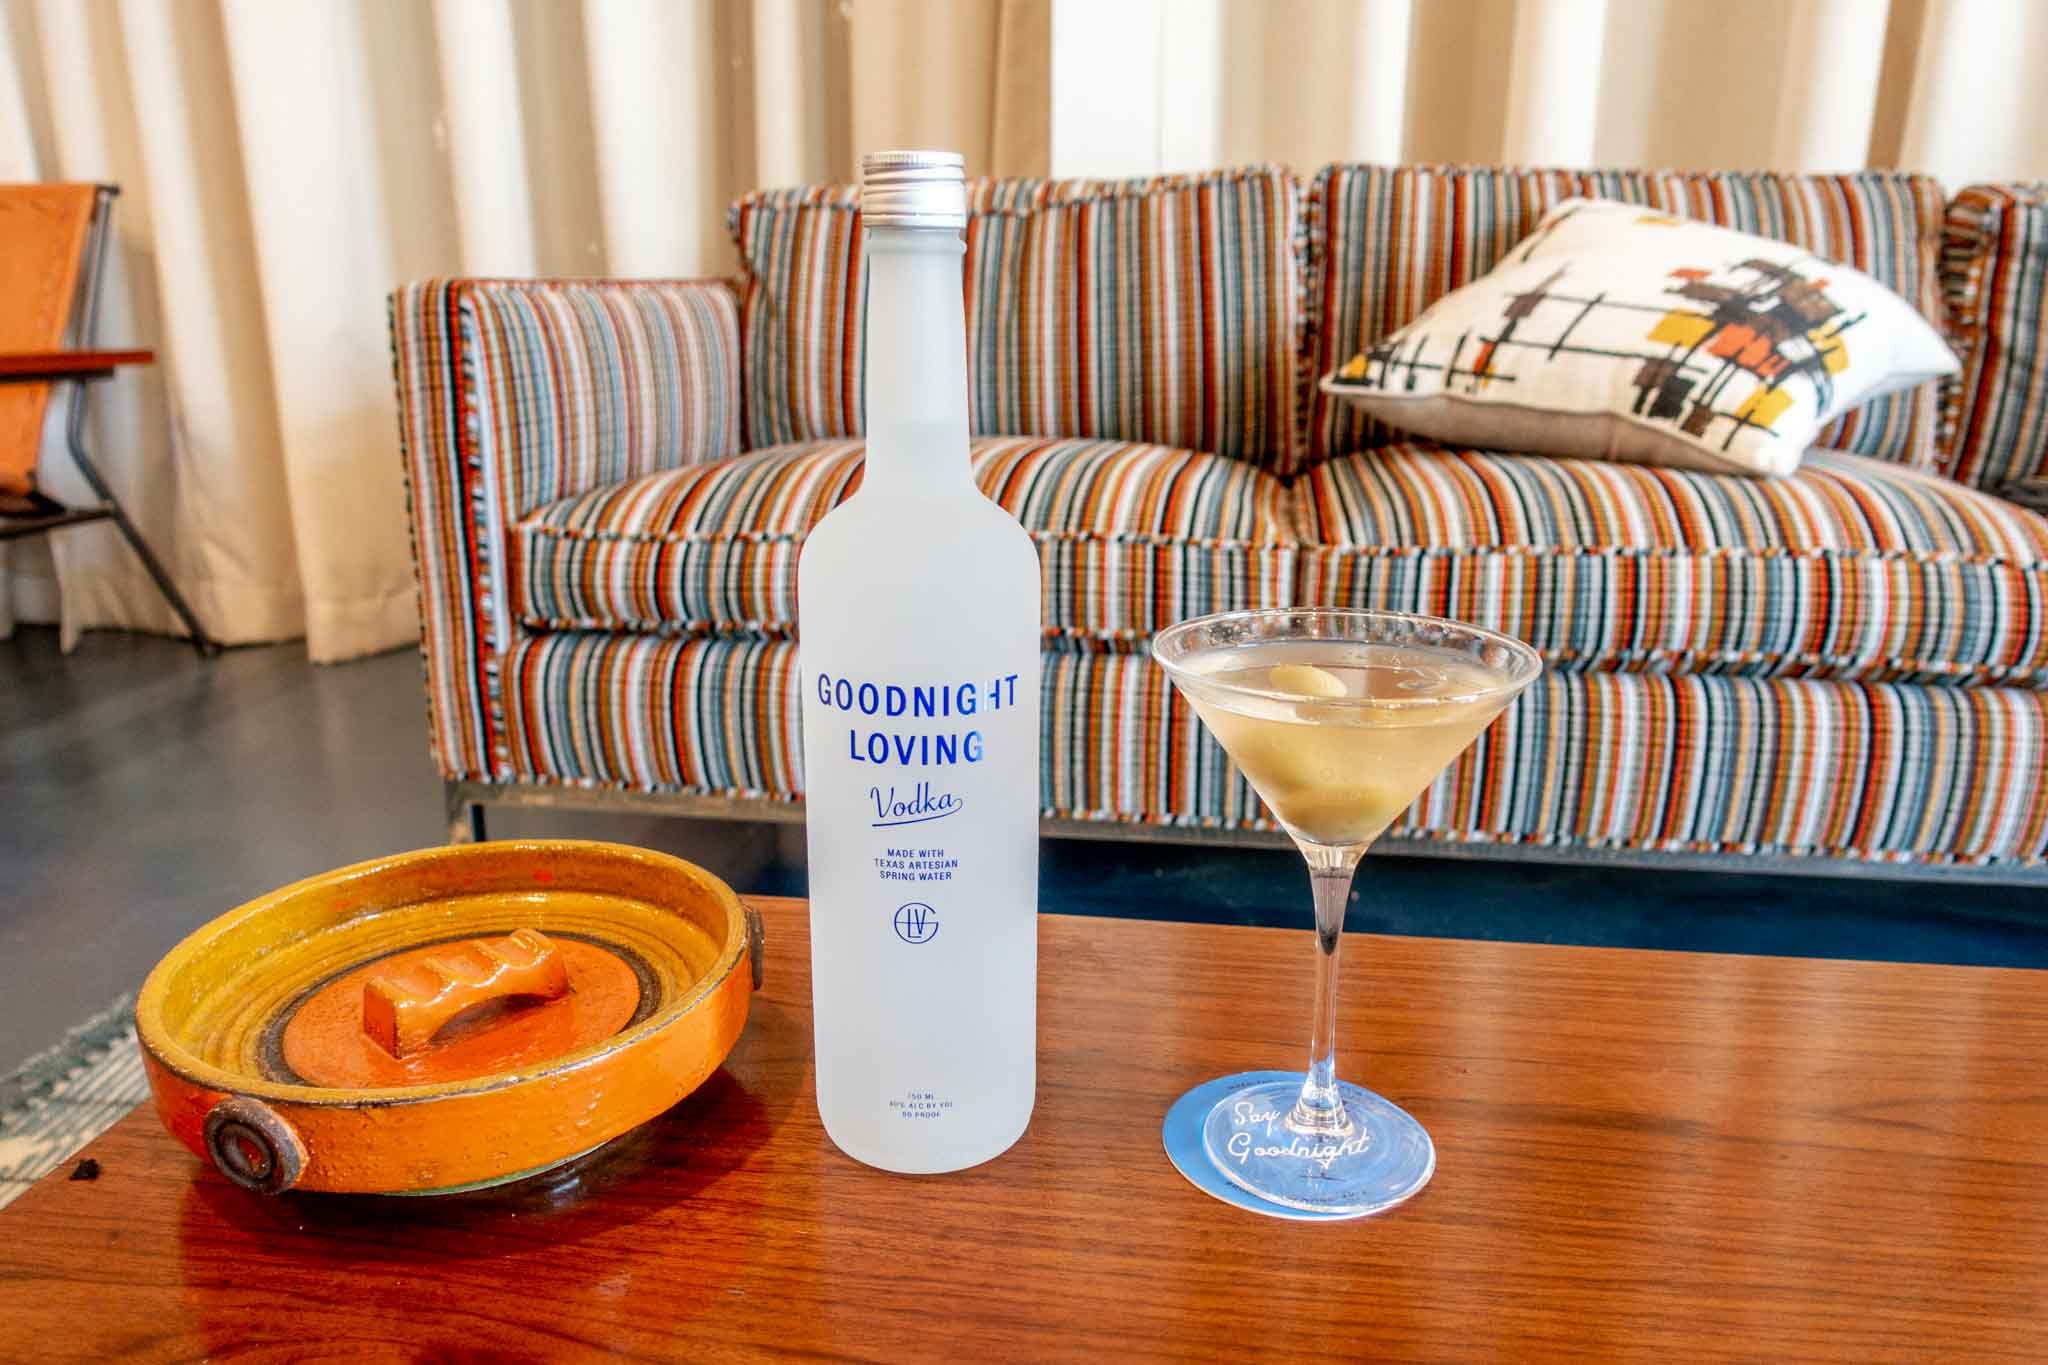 Bottle of Goodnight Loving vodka and martini in 1960s-inspired room